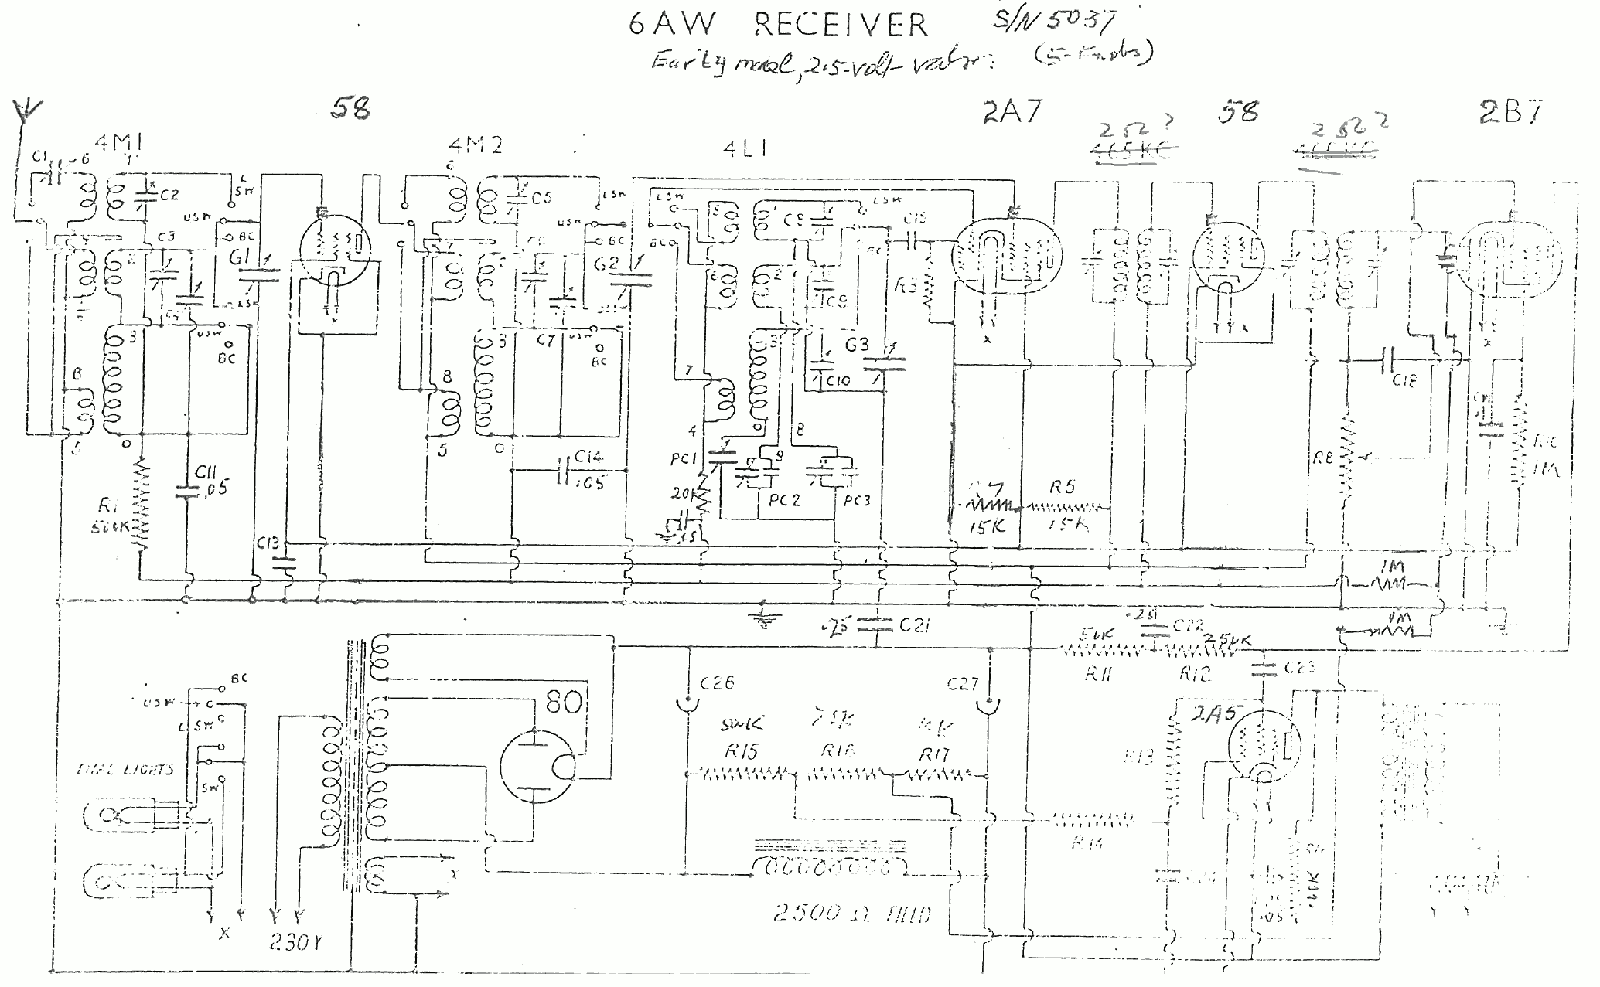 1935 Collier and Beale State - Radion - Etc model 6AW original version schematic